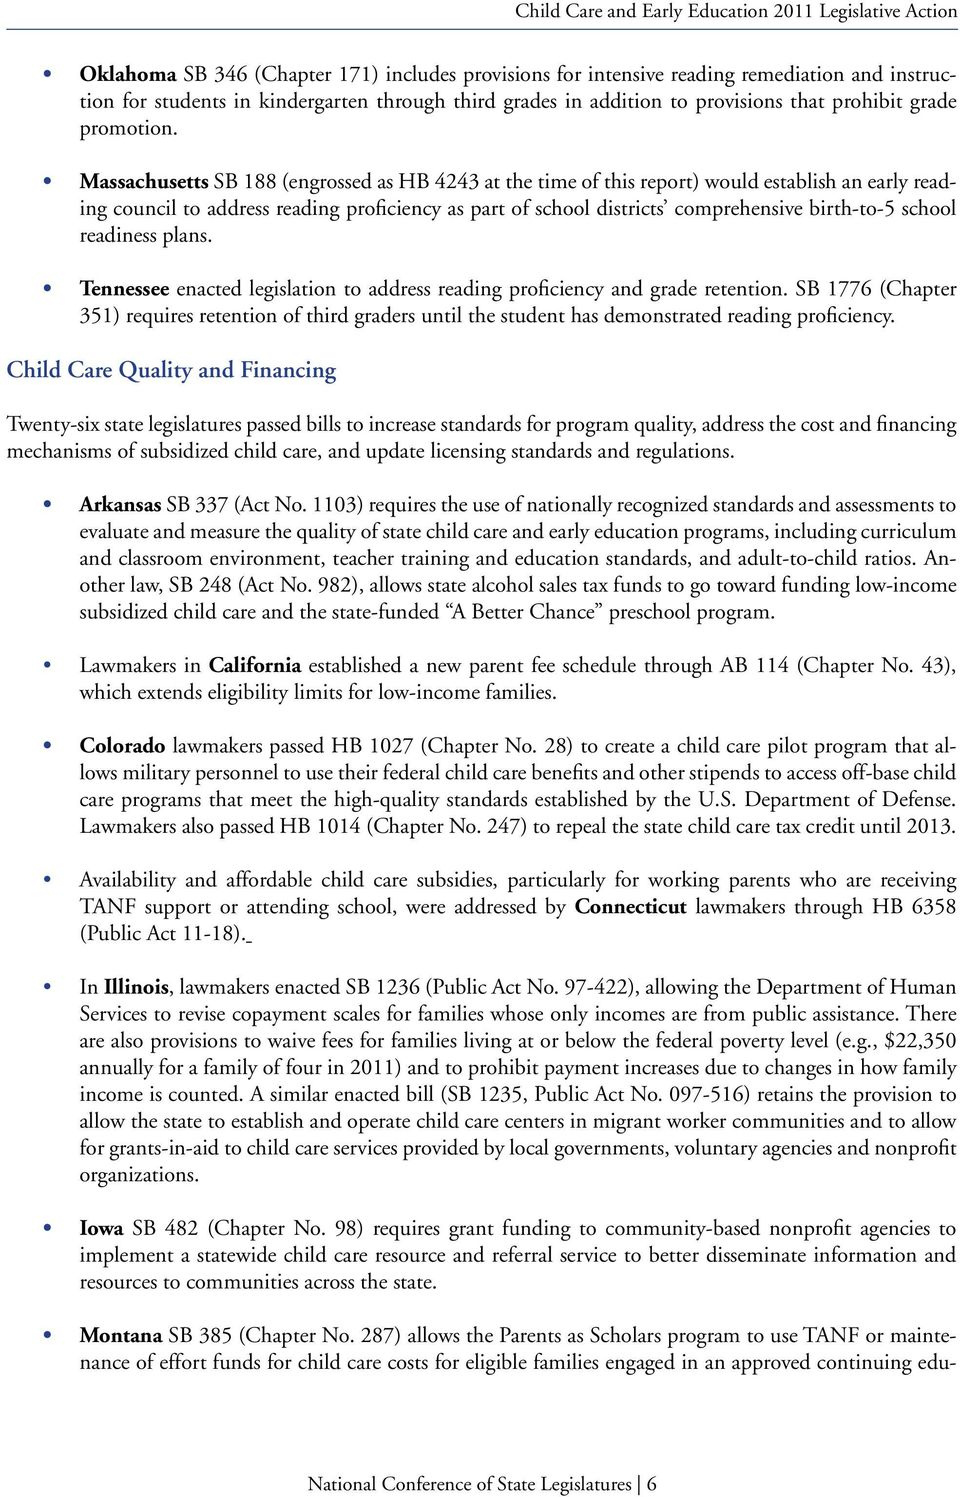 Massachusetts SB 188 (engrossed as HB 4243 at the time of this report) would establish an early reading council to address reading proficiency as part of school districts comprehensive birth-to-5